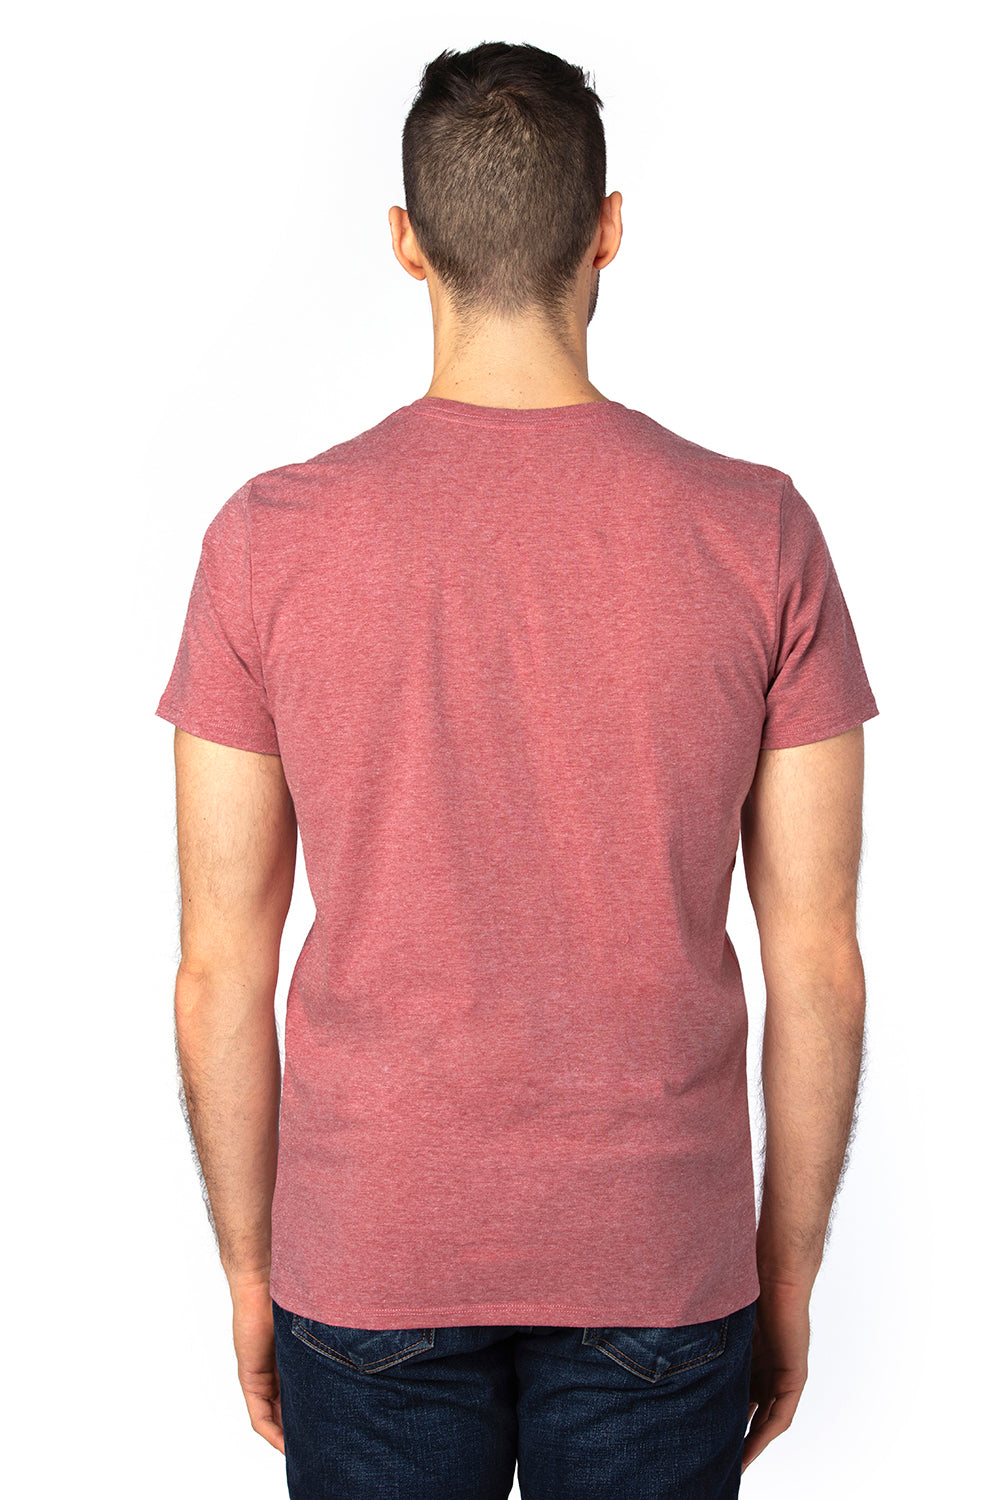 Threadfast Apparel 100A Mens Ultimate Short Sleeve Crewneck T-Shirt Heather Maroon Back